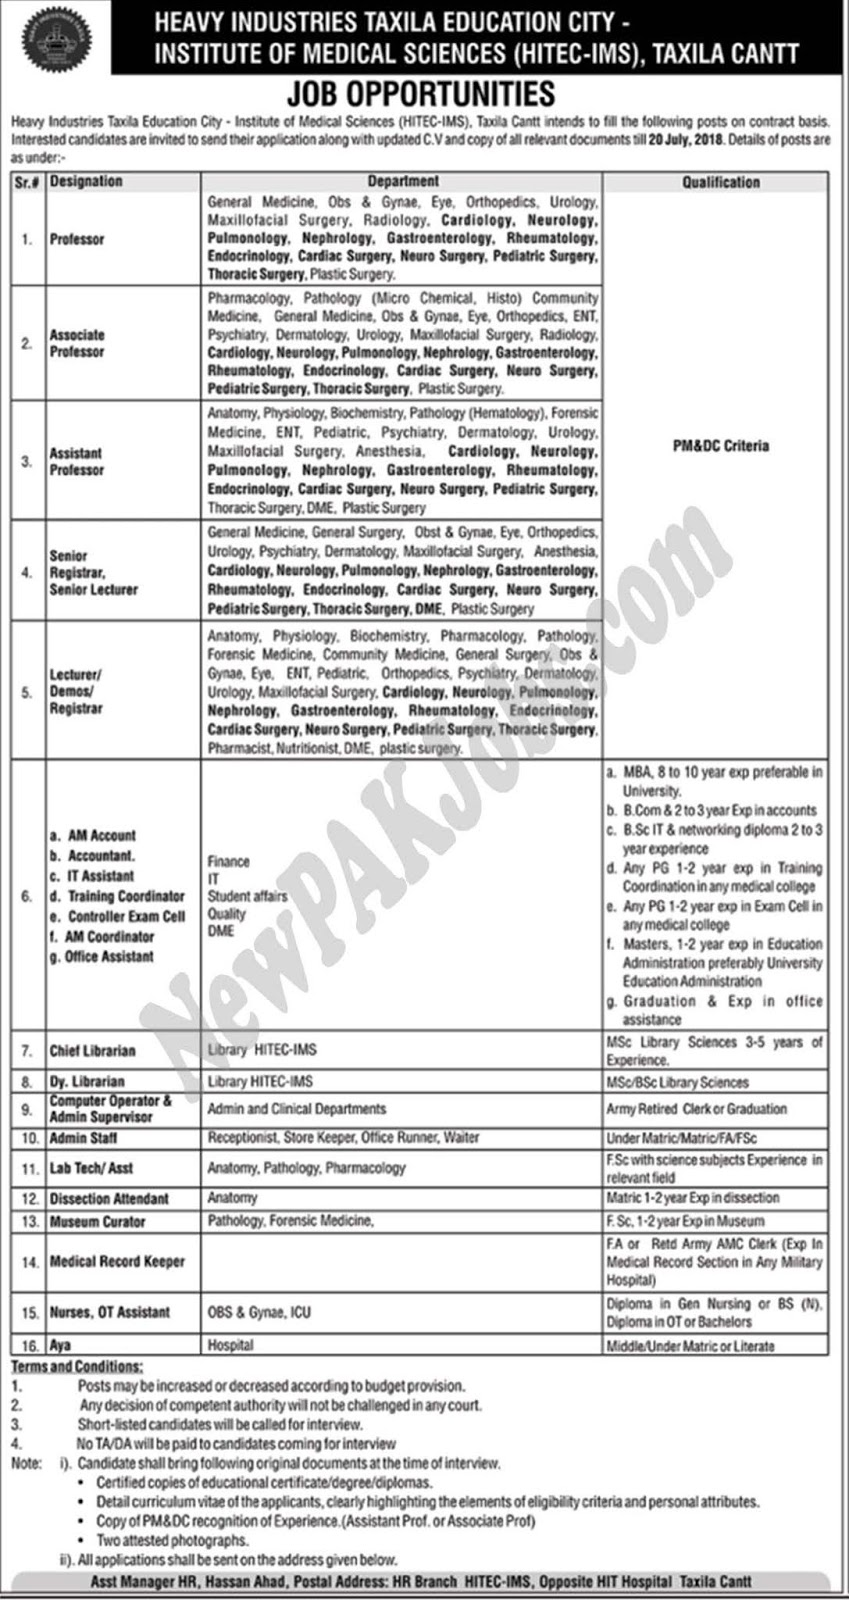 Latest Govt Jobs in Texila July 2018, Heavy Industries Taxila Education City